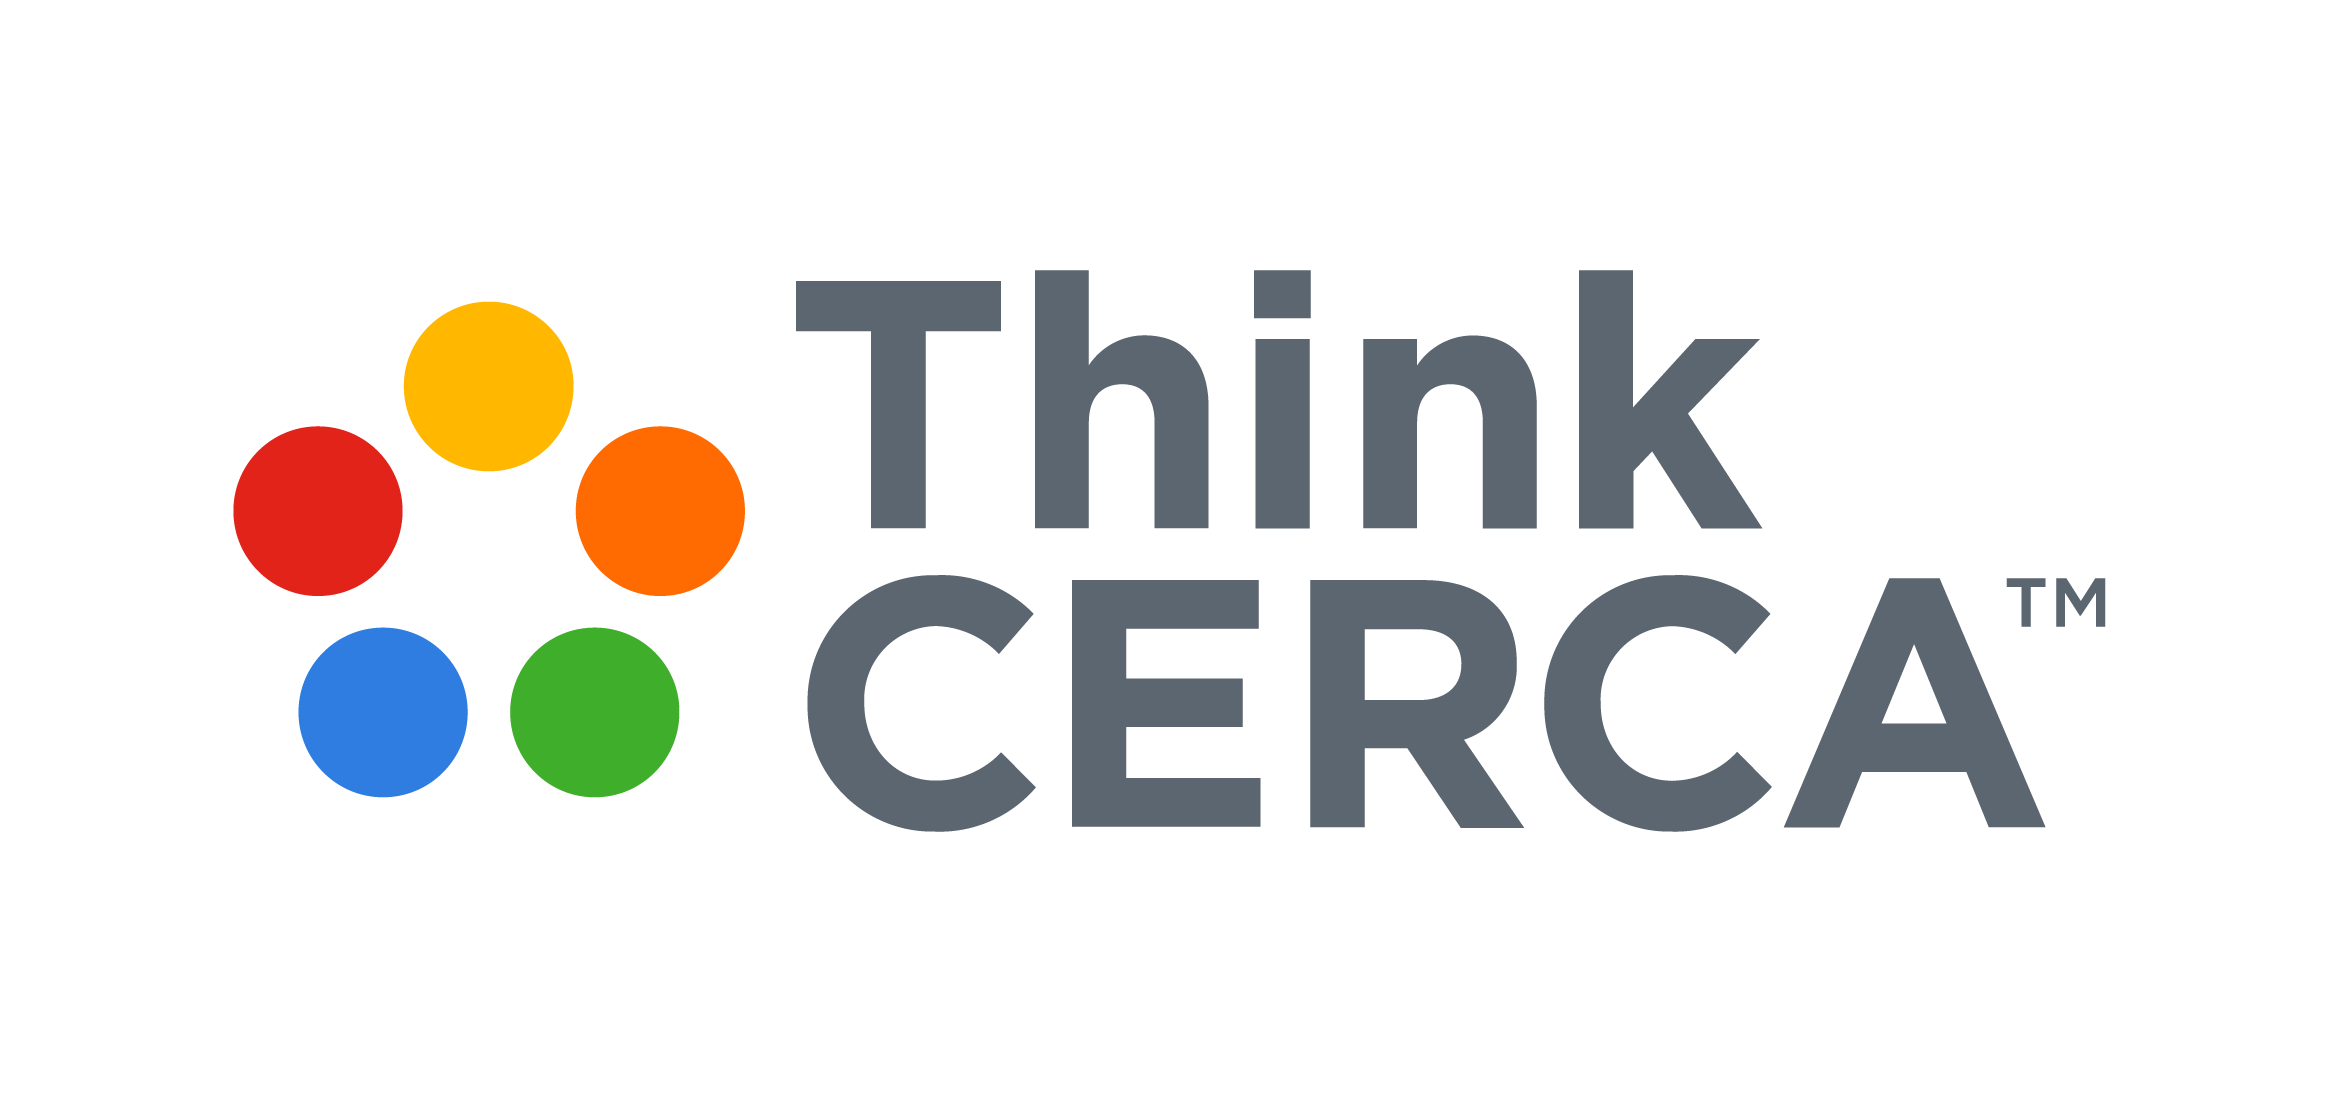 - ThinkCERCA is a personalized literacy program and digital curriculum for teaching close reading and academic writing across all four core subjects.